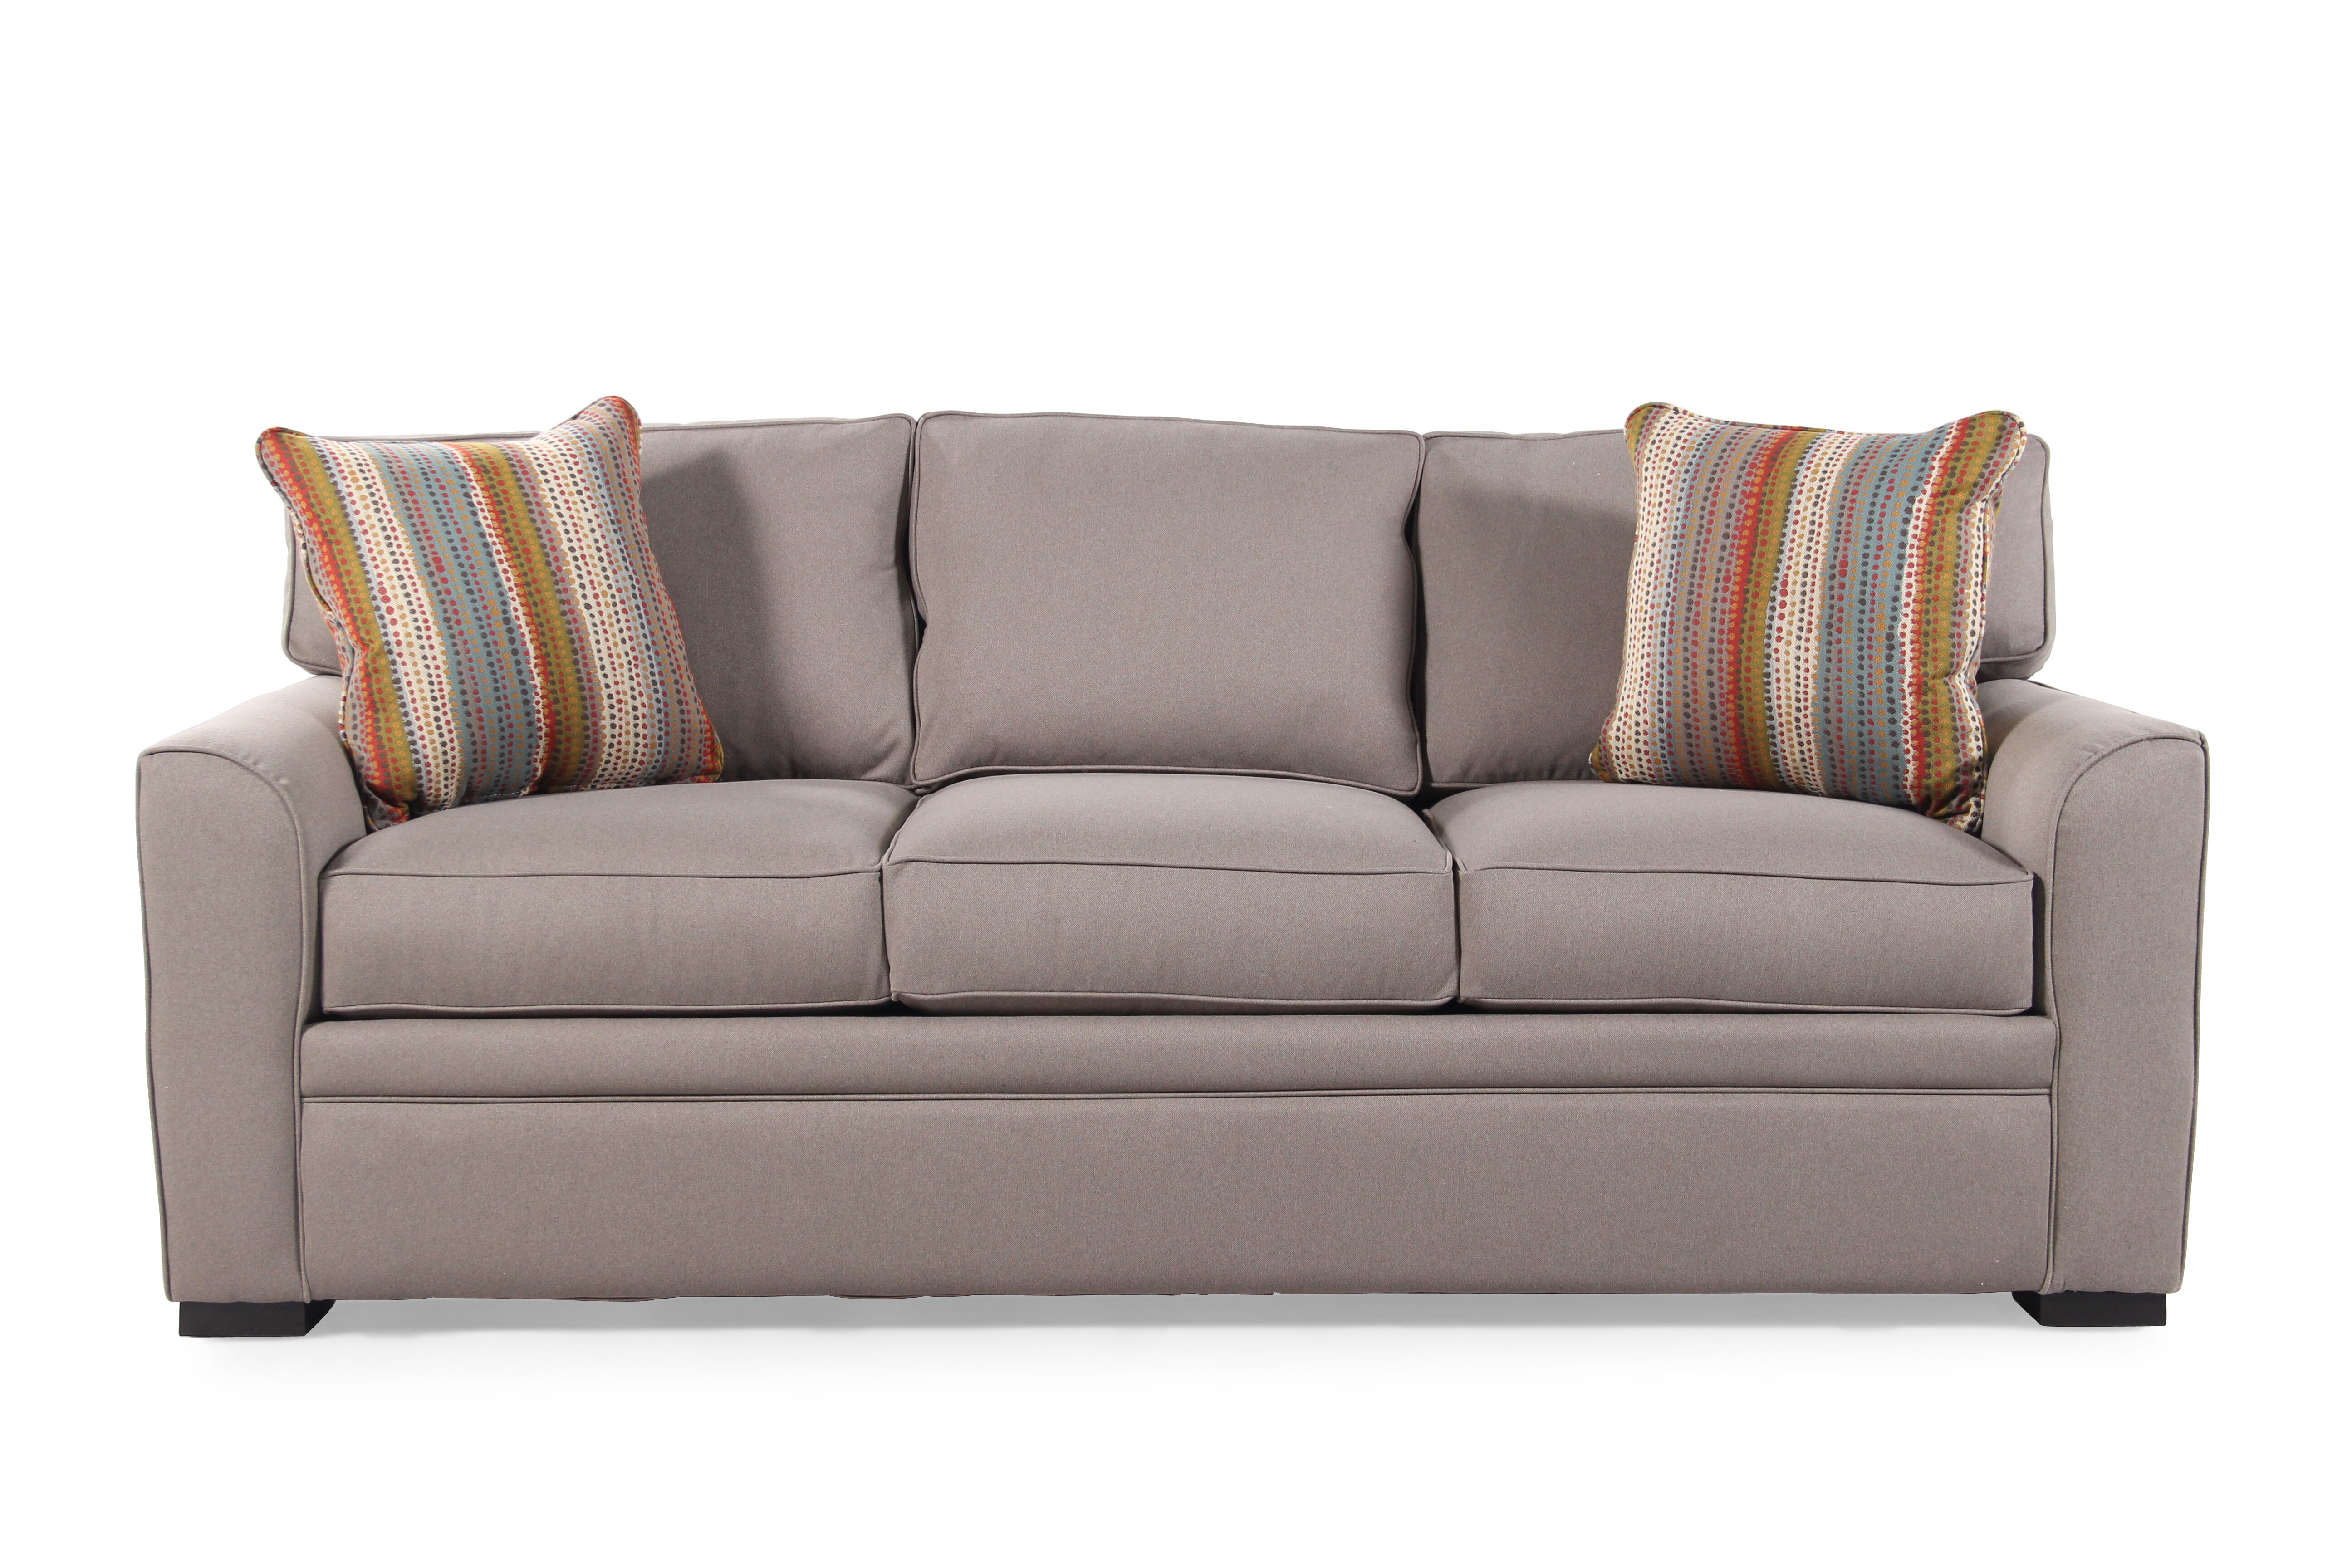 Traditional 83 Queen Sleeper Sofa in Caf Au Lait Mathis Brothers